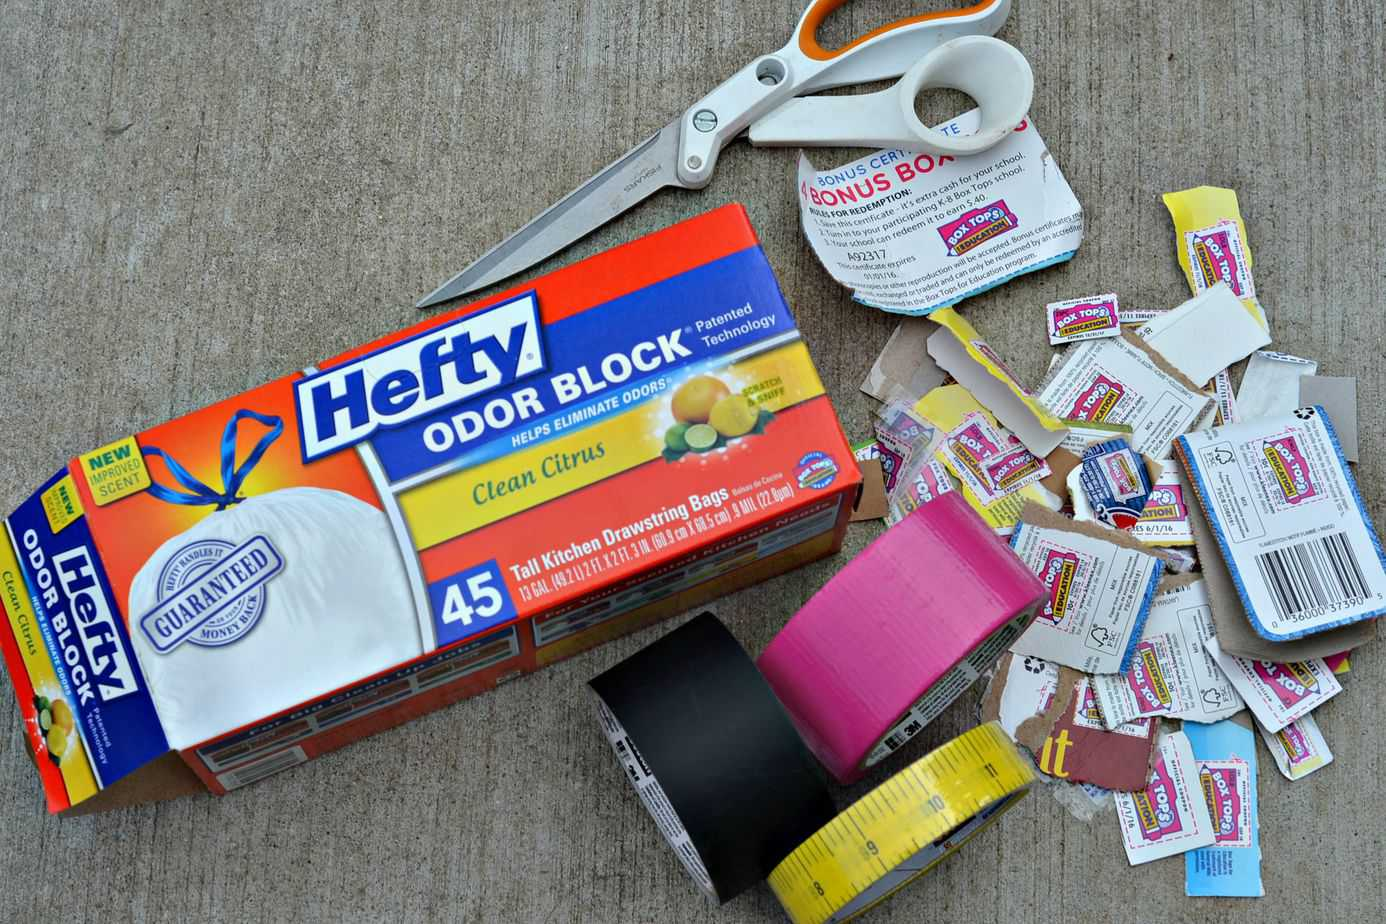 #Hefty4BoxTops-Supplies